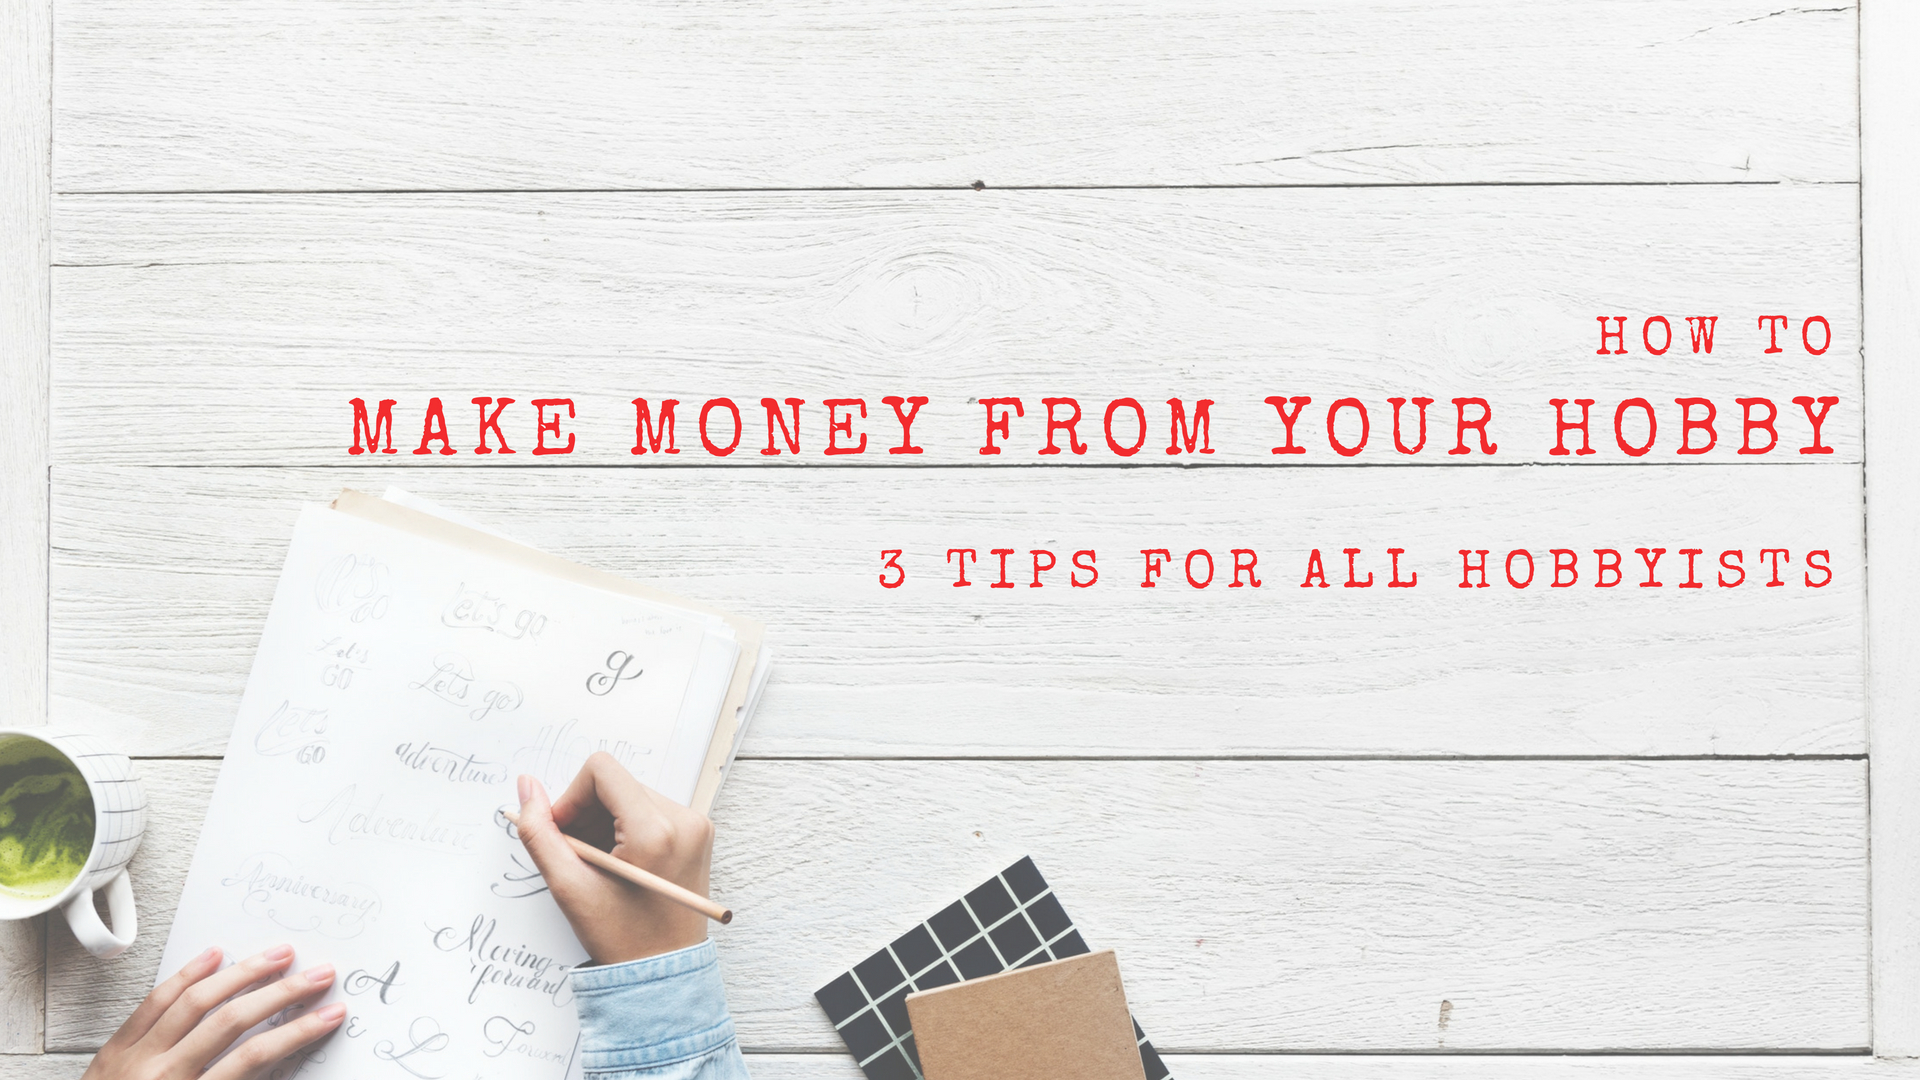 Poster: How to make money from your hobby: 3 tips for all hobbyists